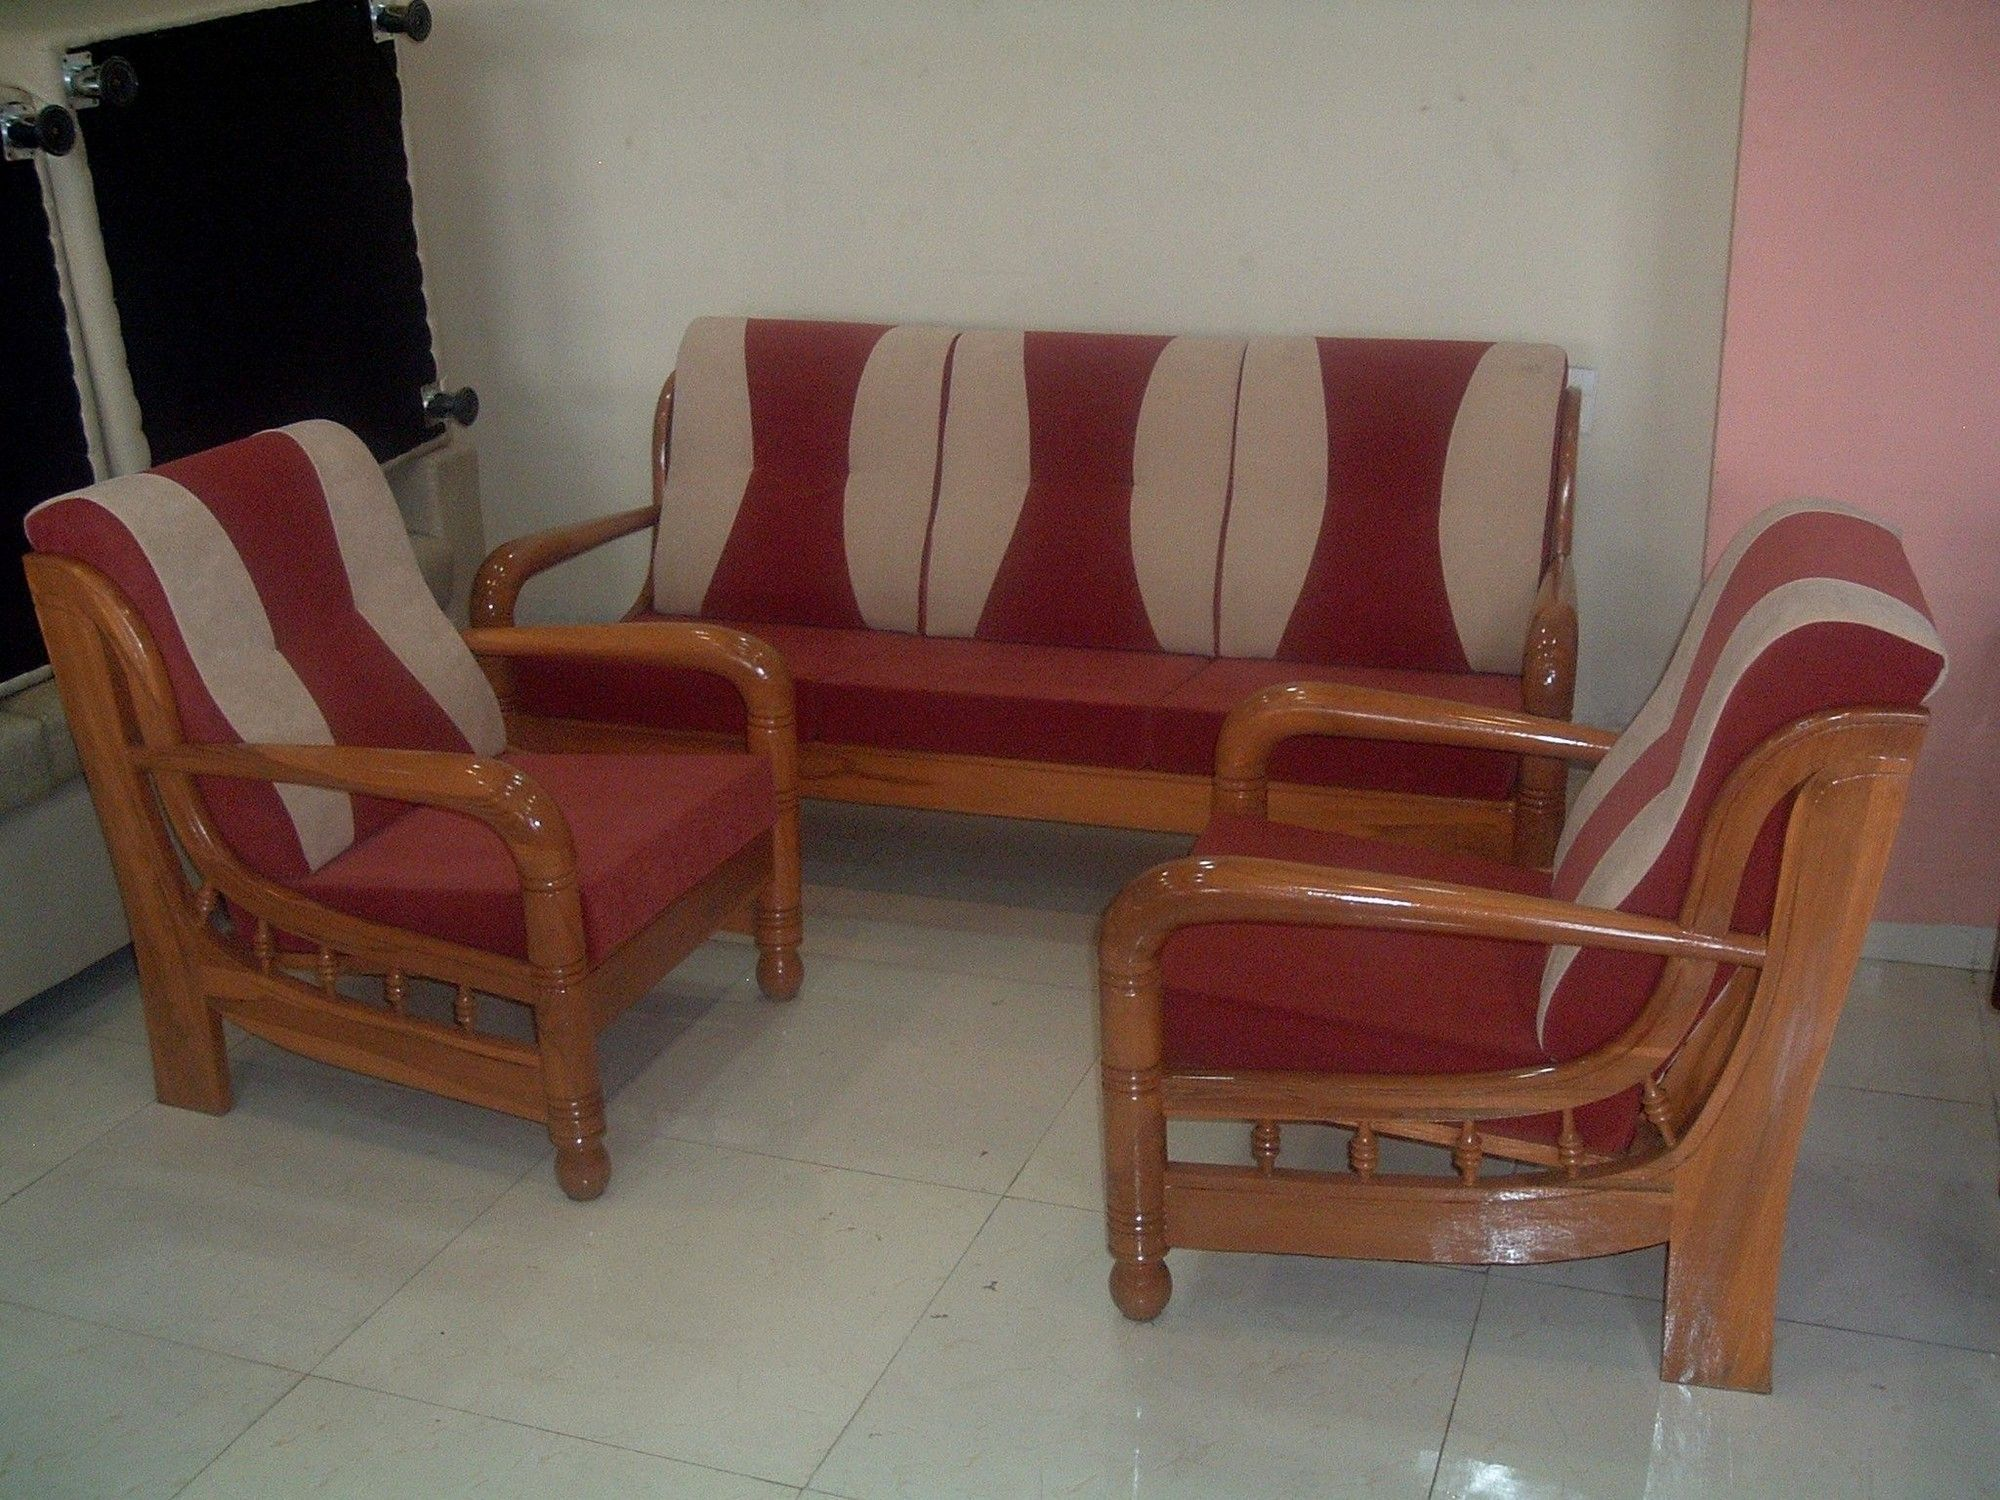 Wooden Sofa Set Indian And Pakistani Design Wooden Sofa Set Designs Wooden Sofa Set Wooden Sofa Designs